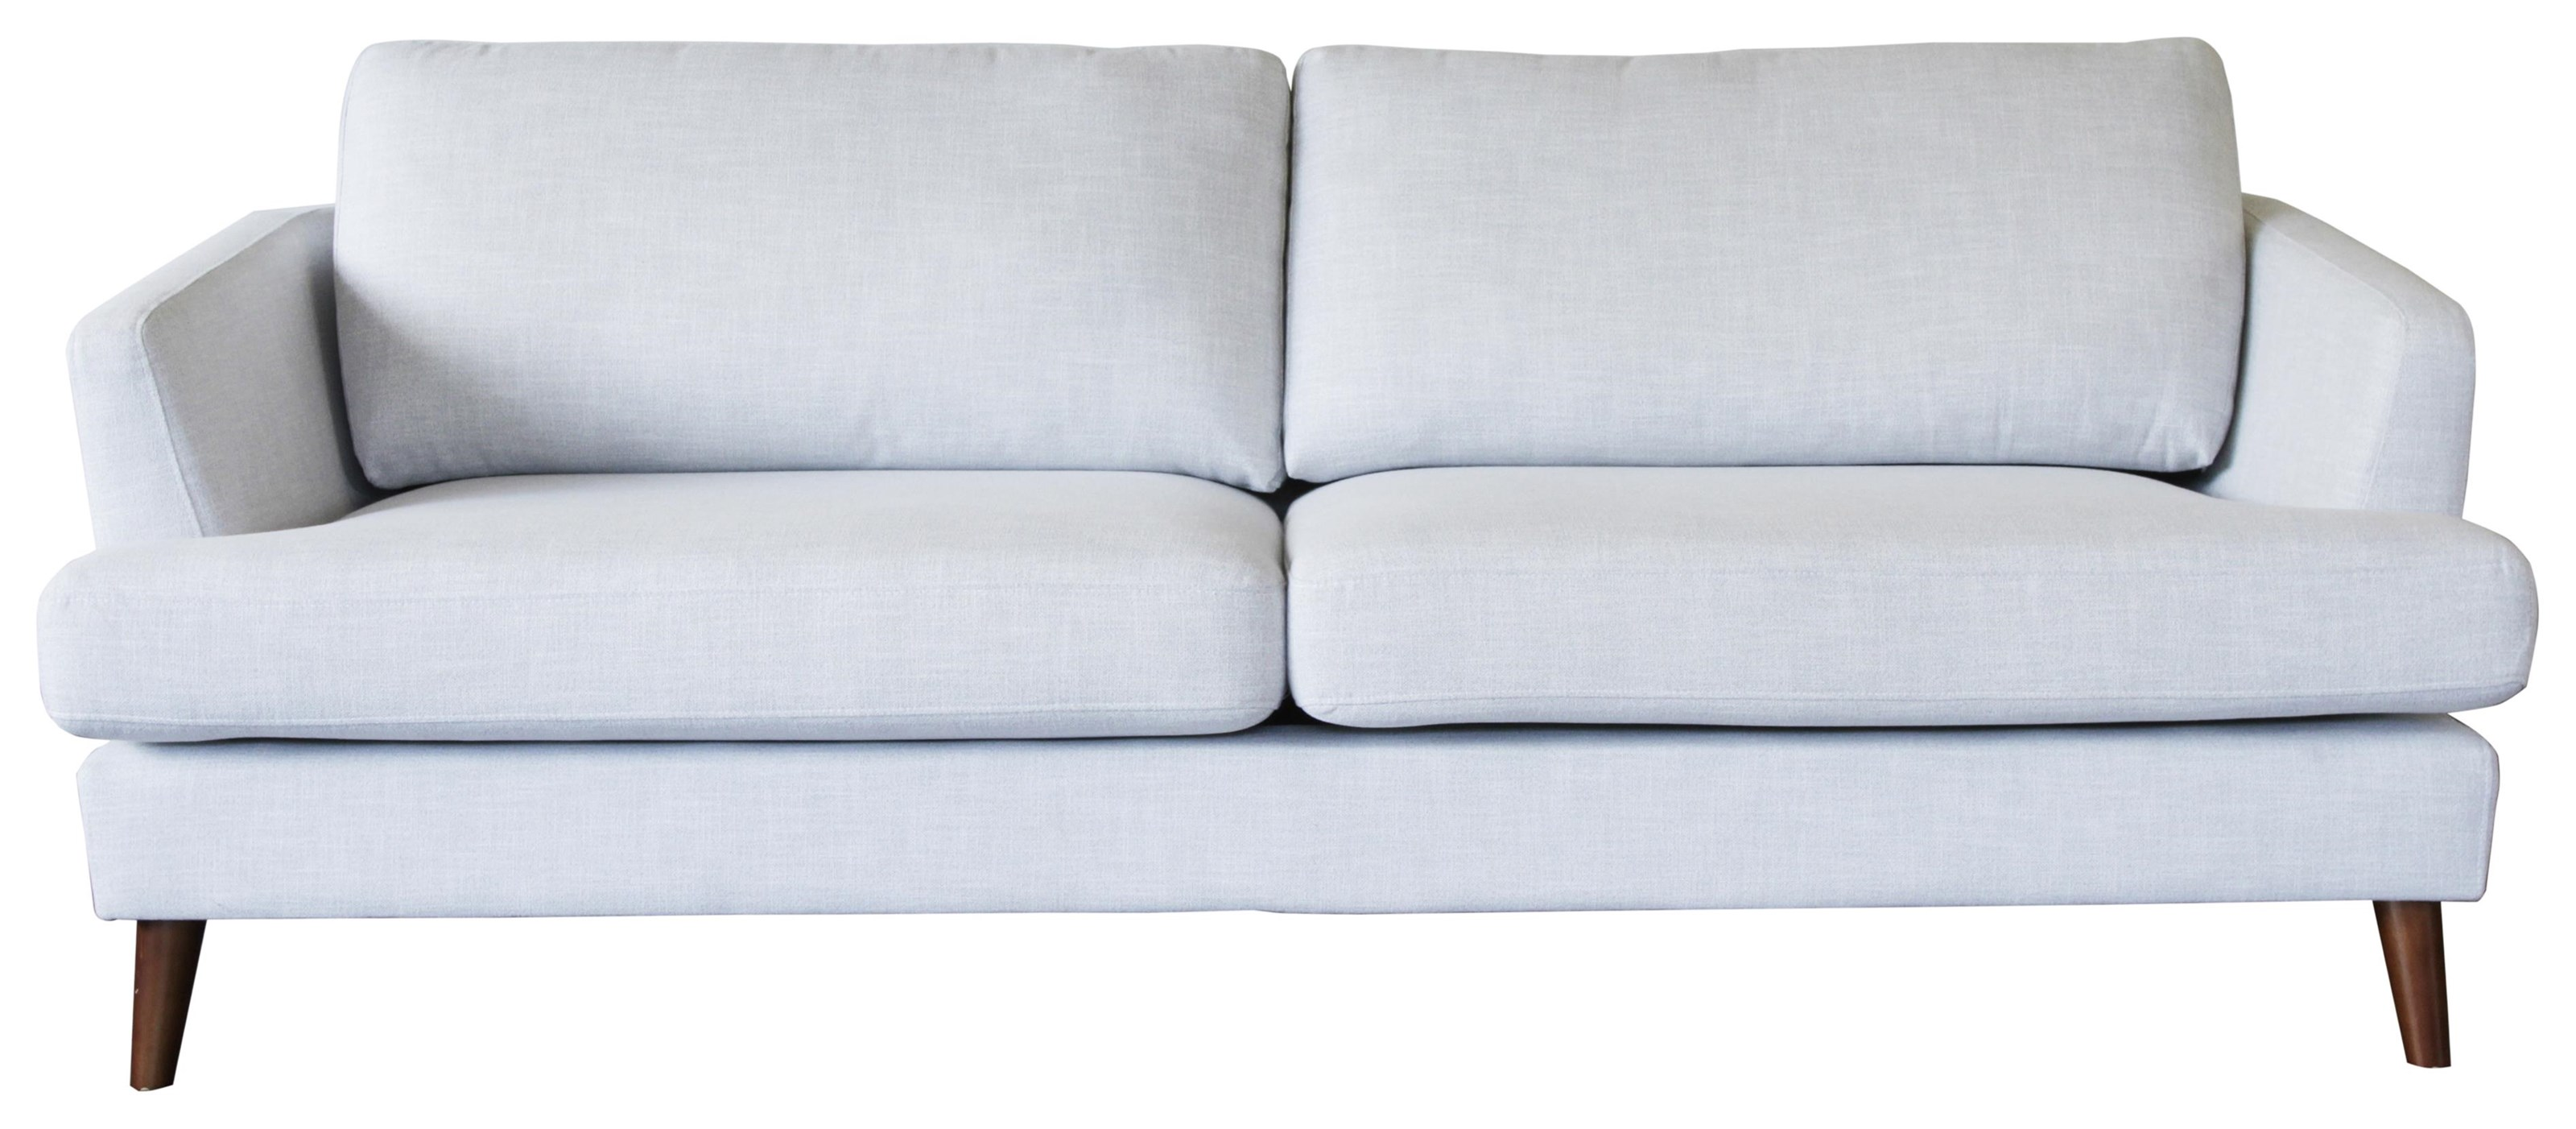 Hailey Sofa by Urban Chic at Red Knot